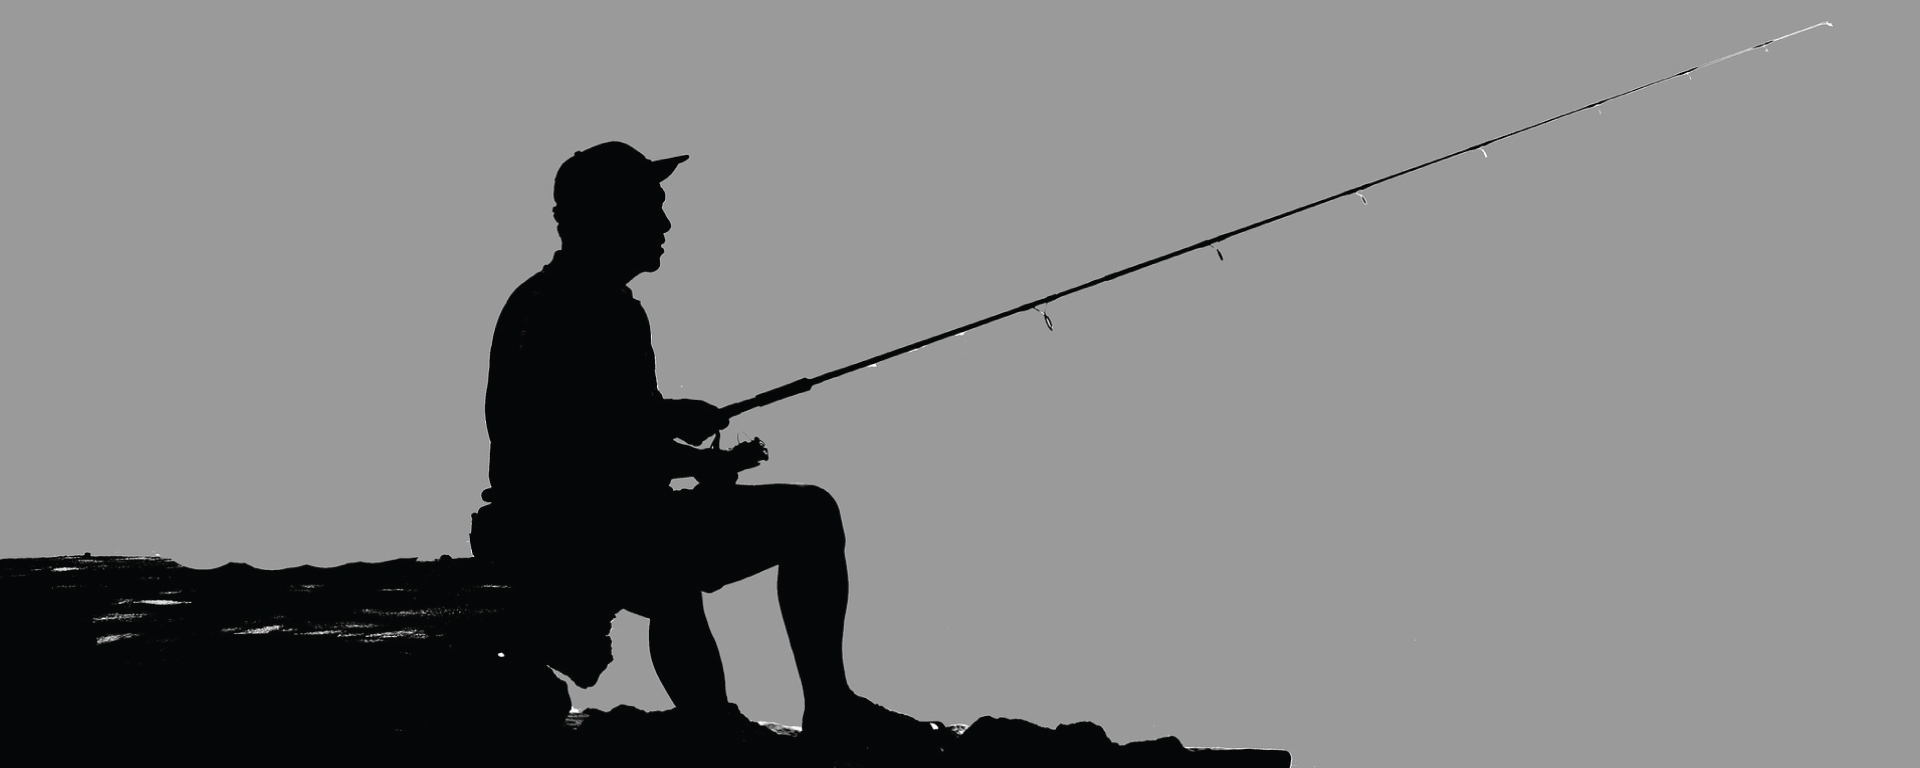 Best-Fishing-Backpack-2017-With-Ultimate-Buying-Guide (1)